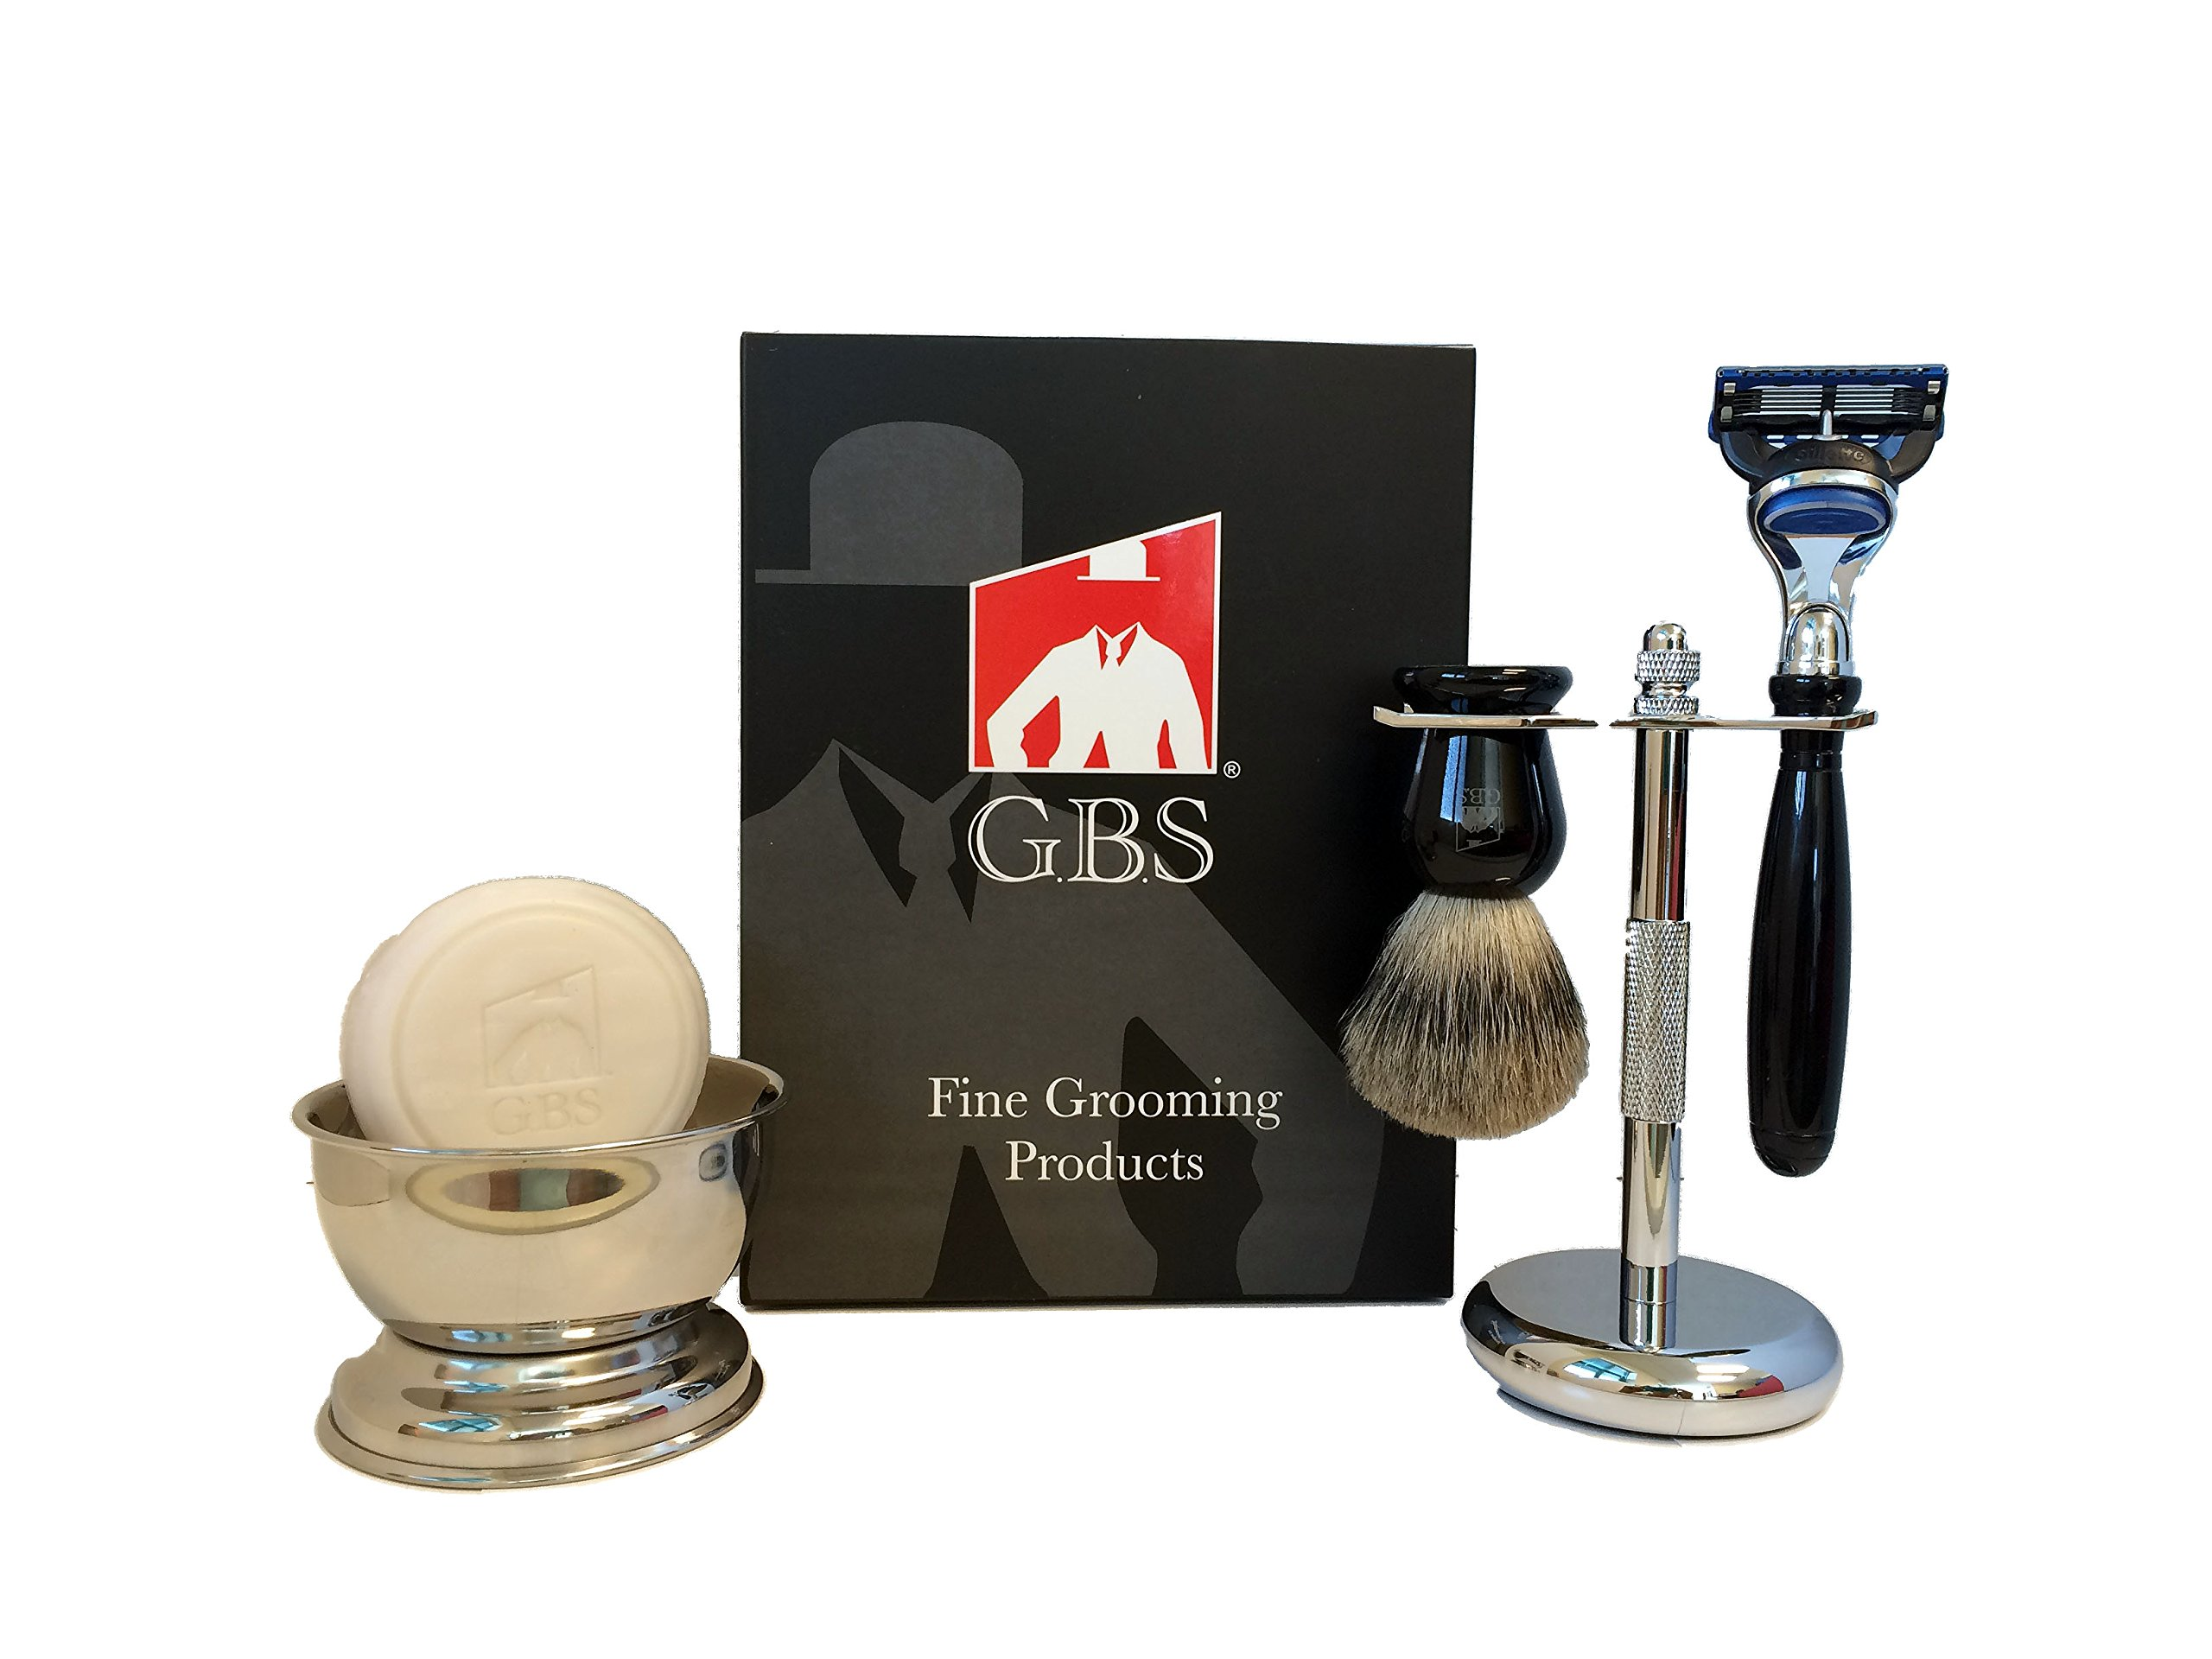 GBS 5 Piece Mens Shaving Gift Set - Comes with Gift Box - 5 Blade Razor + Pure Badger Brush + Chrome Brush and Razor Stand + Chrome Bowl + Soap